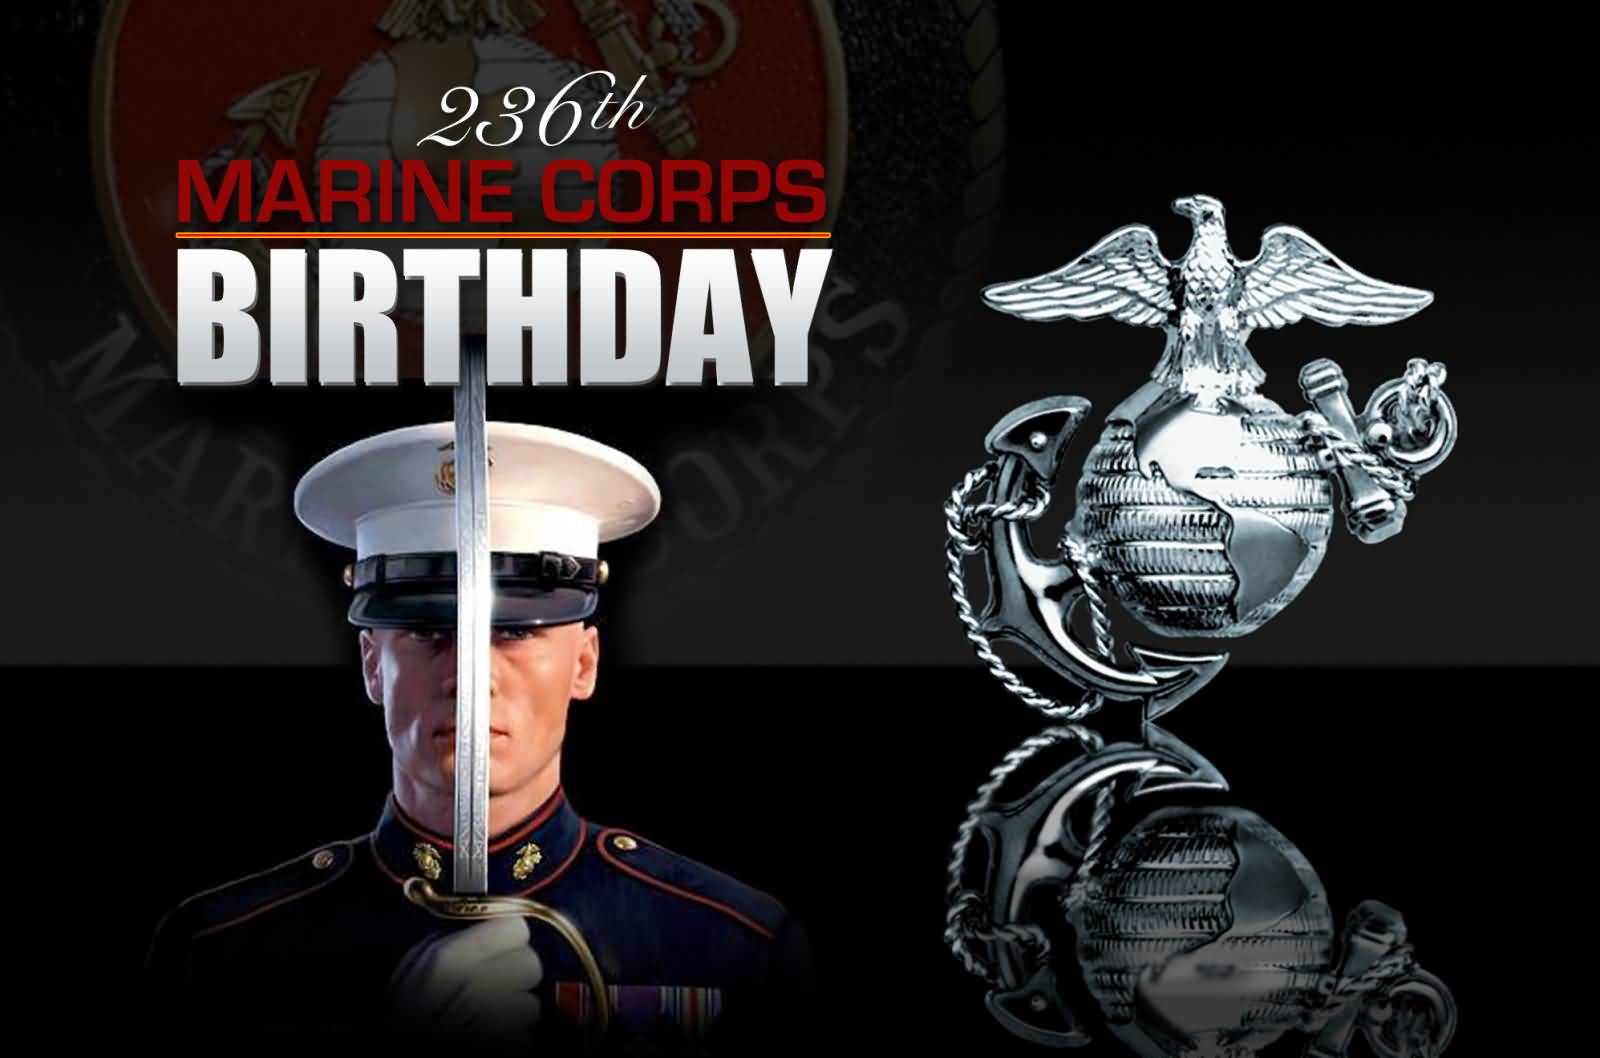 3-Marine Corps Birthday Wishes